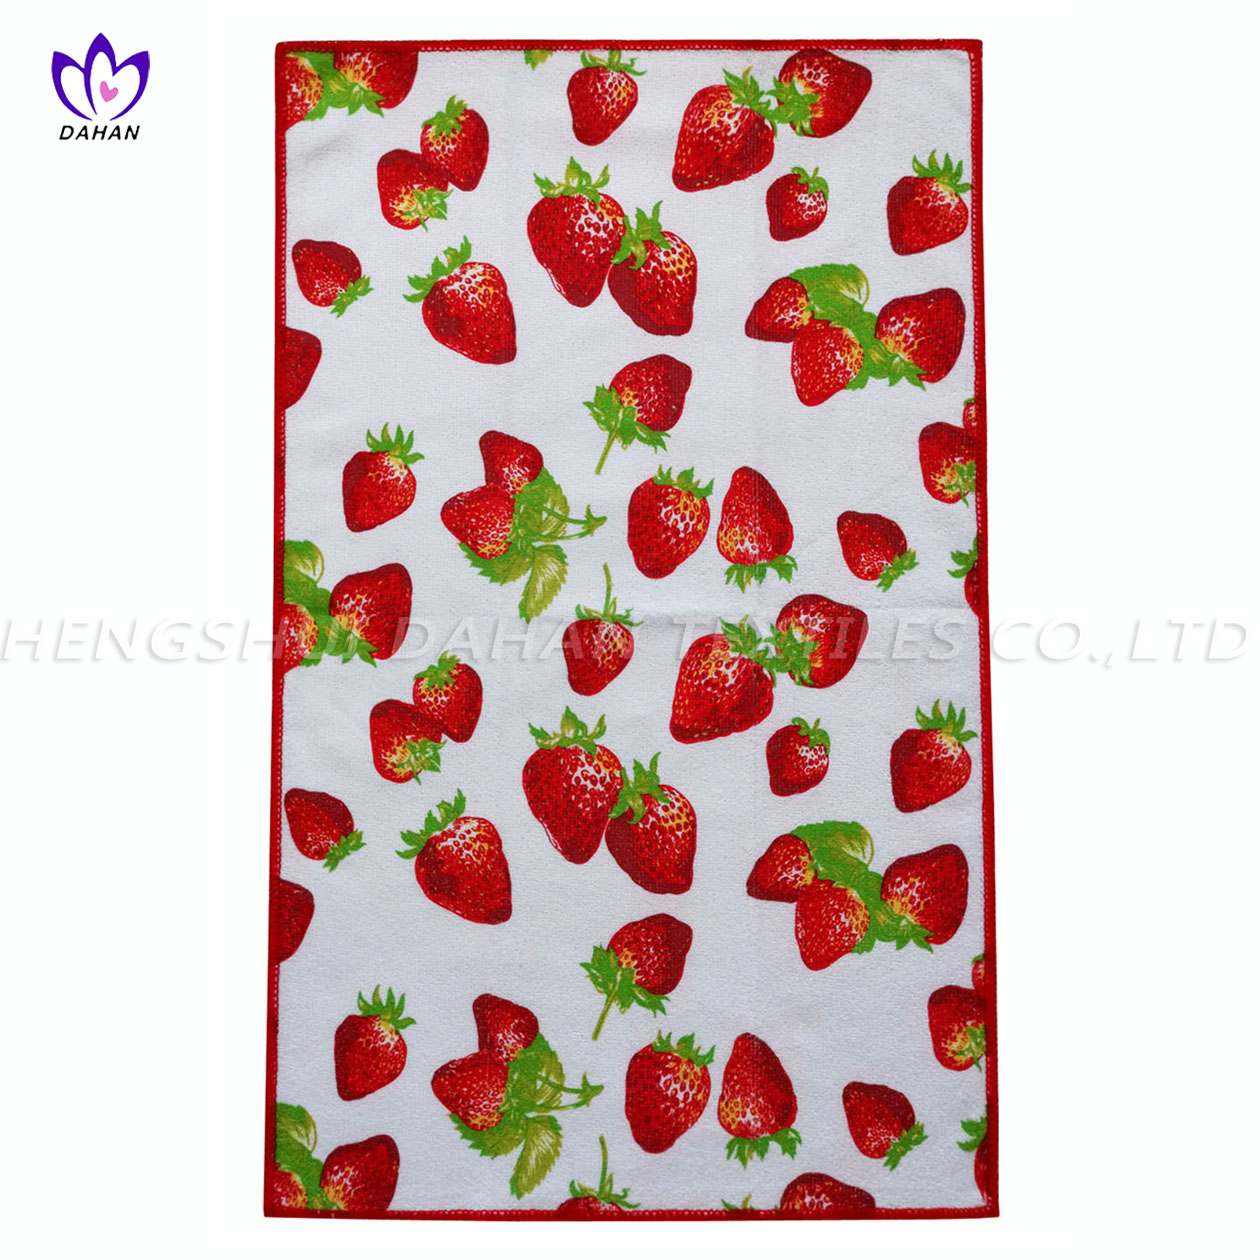 MC125.100% polyester printing microfiber kitchen towel.